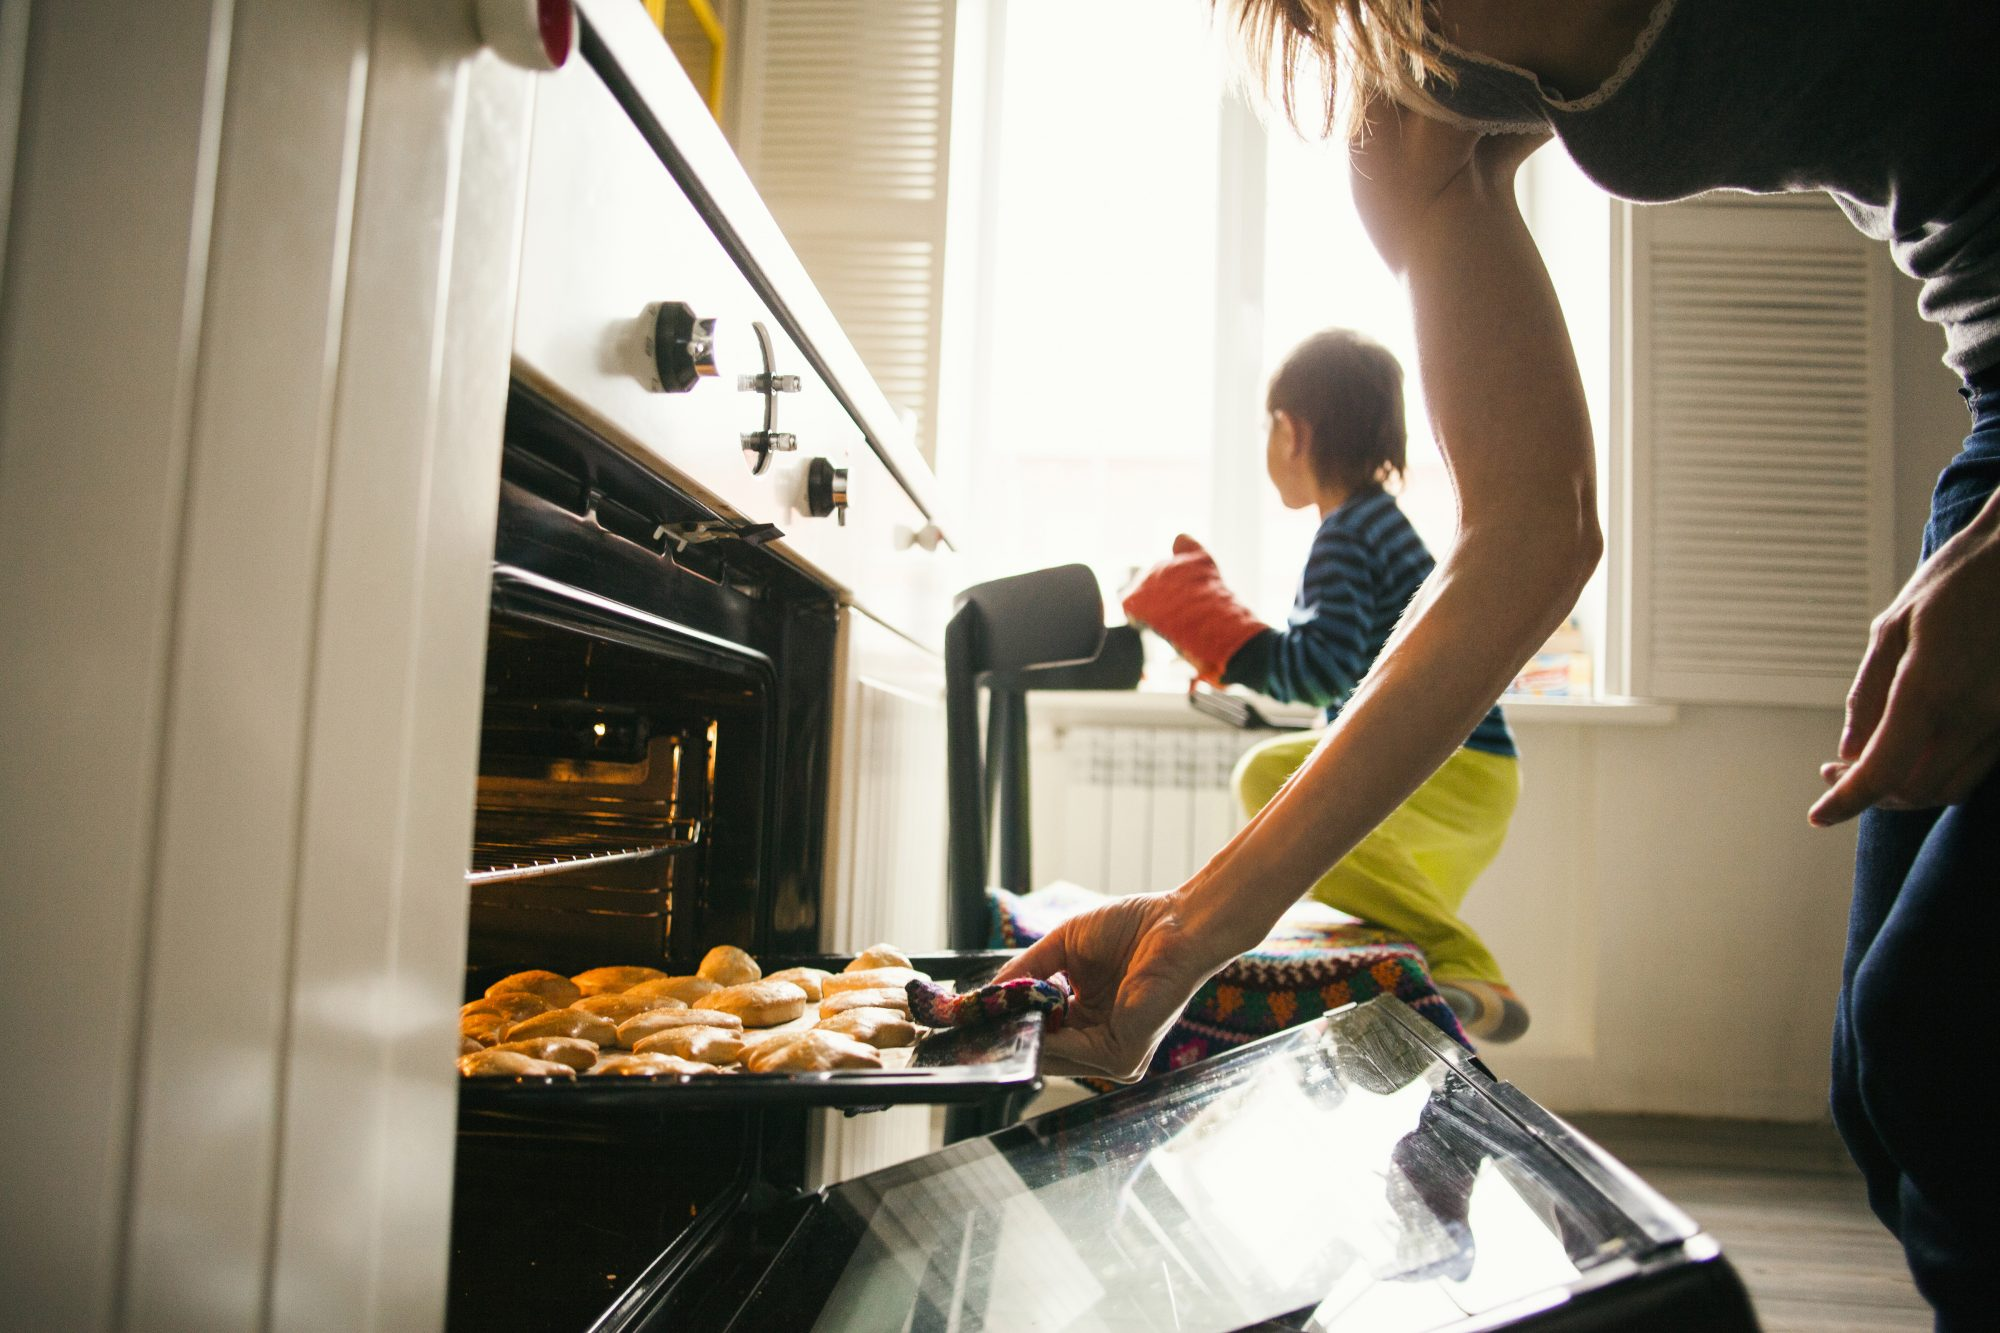 getty-hot-kitchen-image